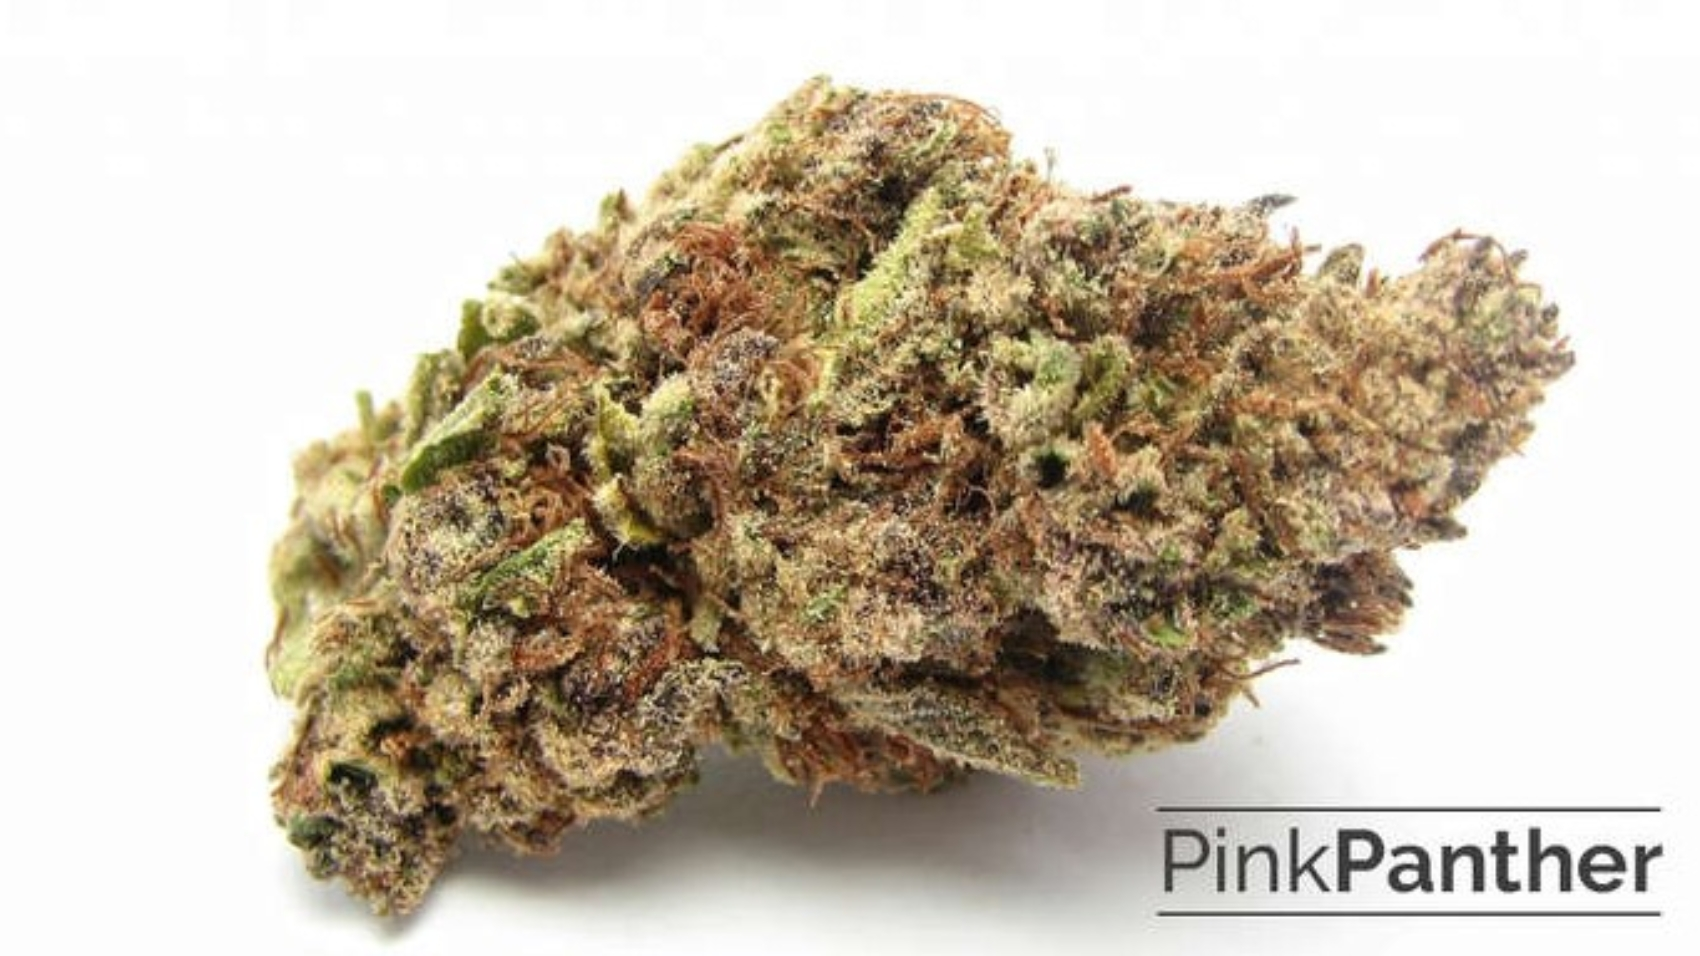 Pink Panther Strain